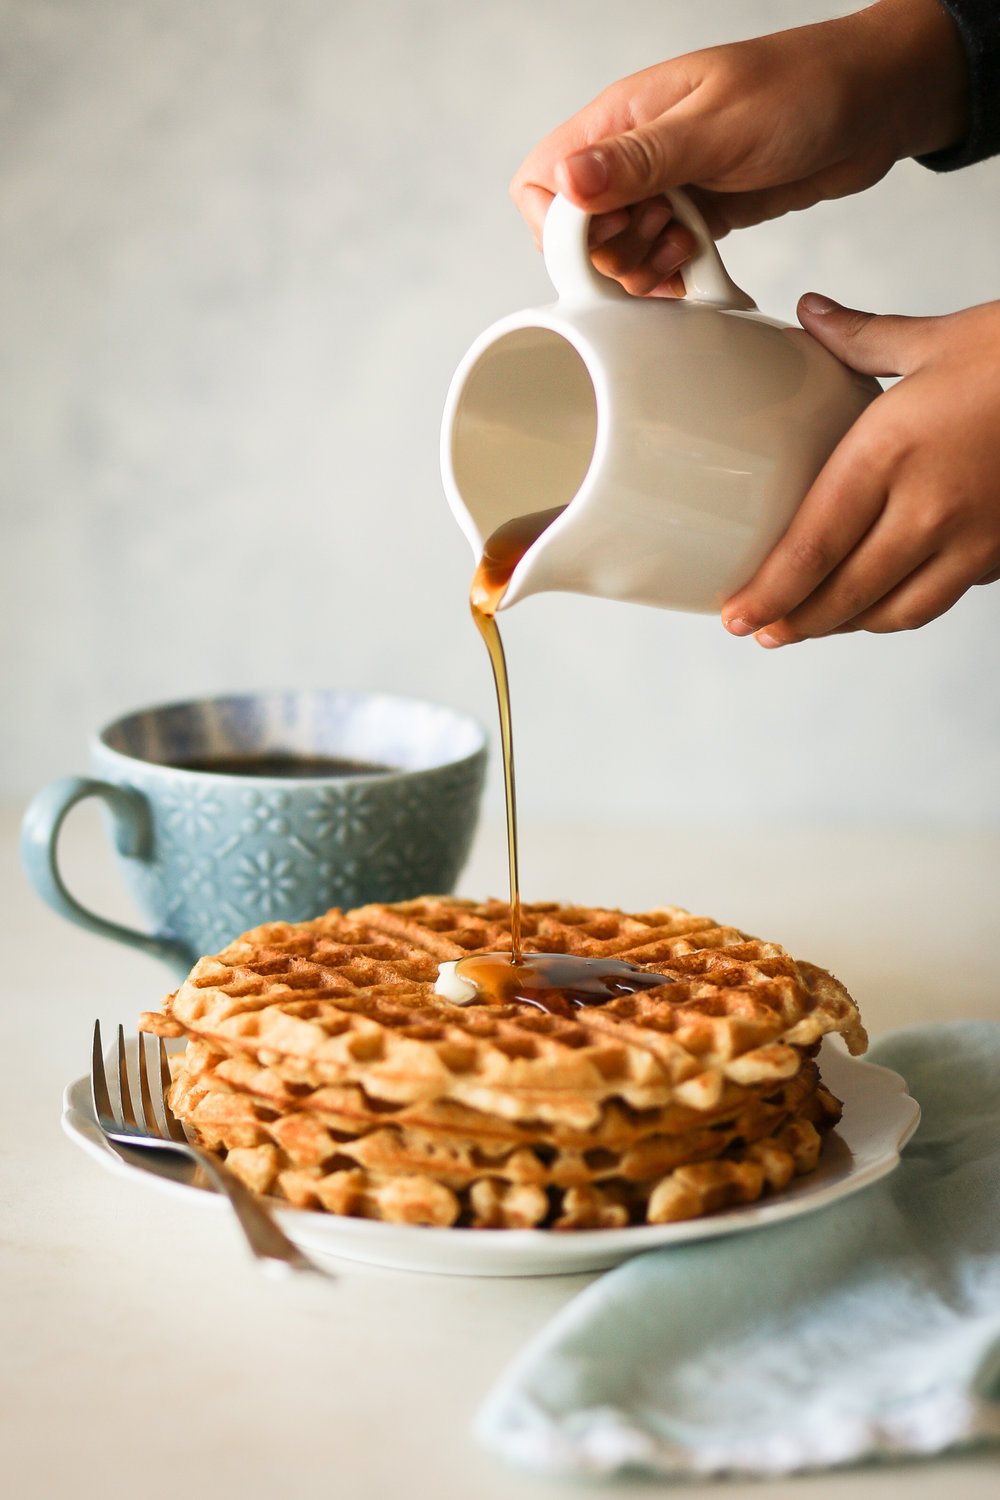 Brown Butter Vanilla Waffles | Set the Table #waffles #wafflerecipe #breakfast #brunch #brownbutter